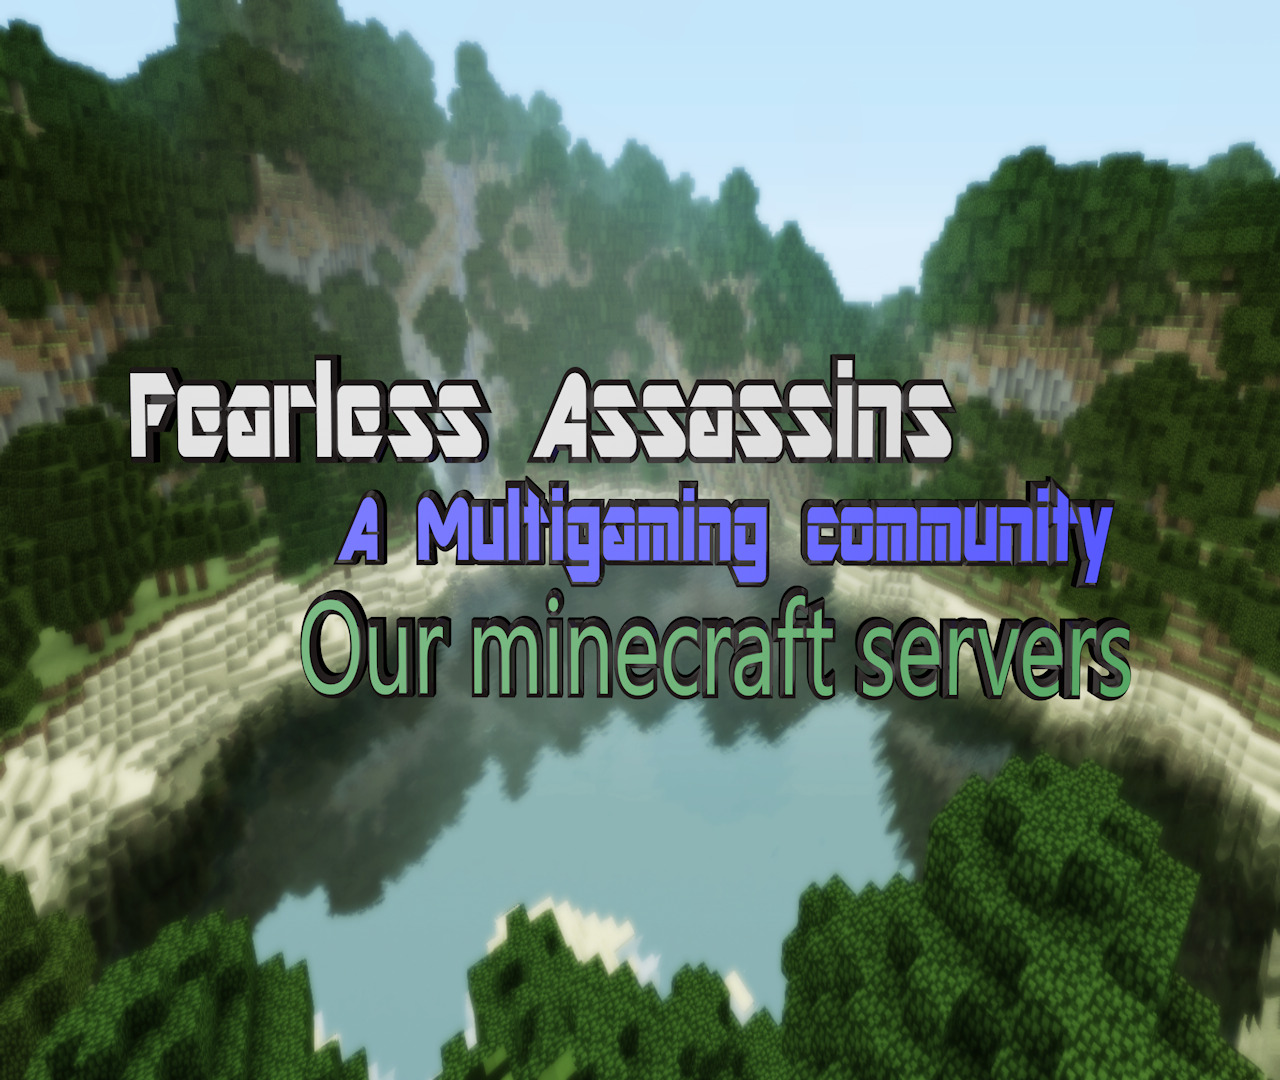 Presentation of the server minecraft image